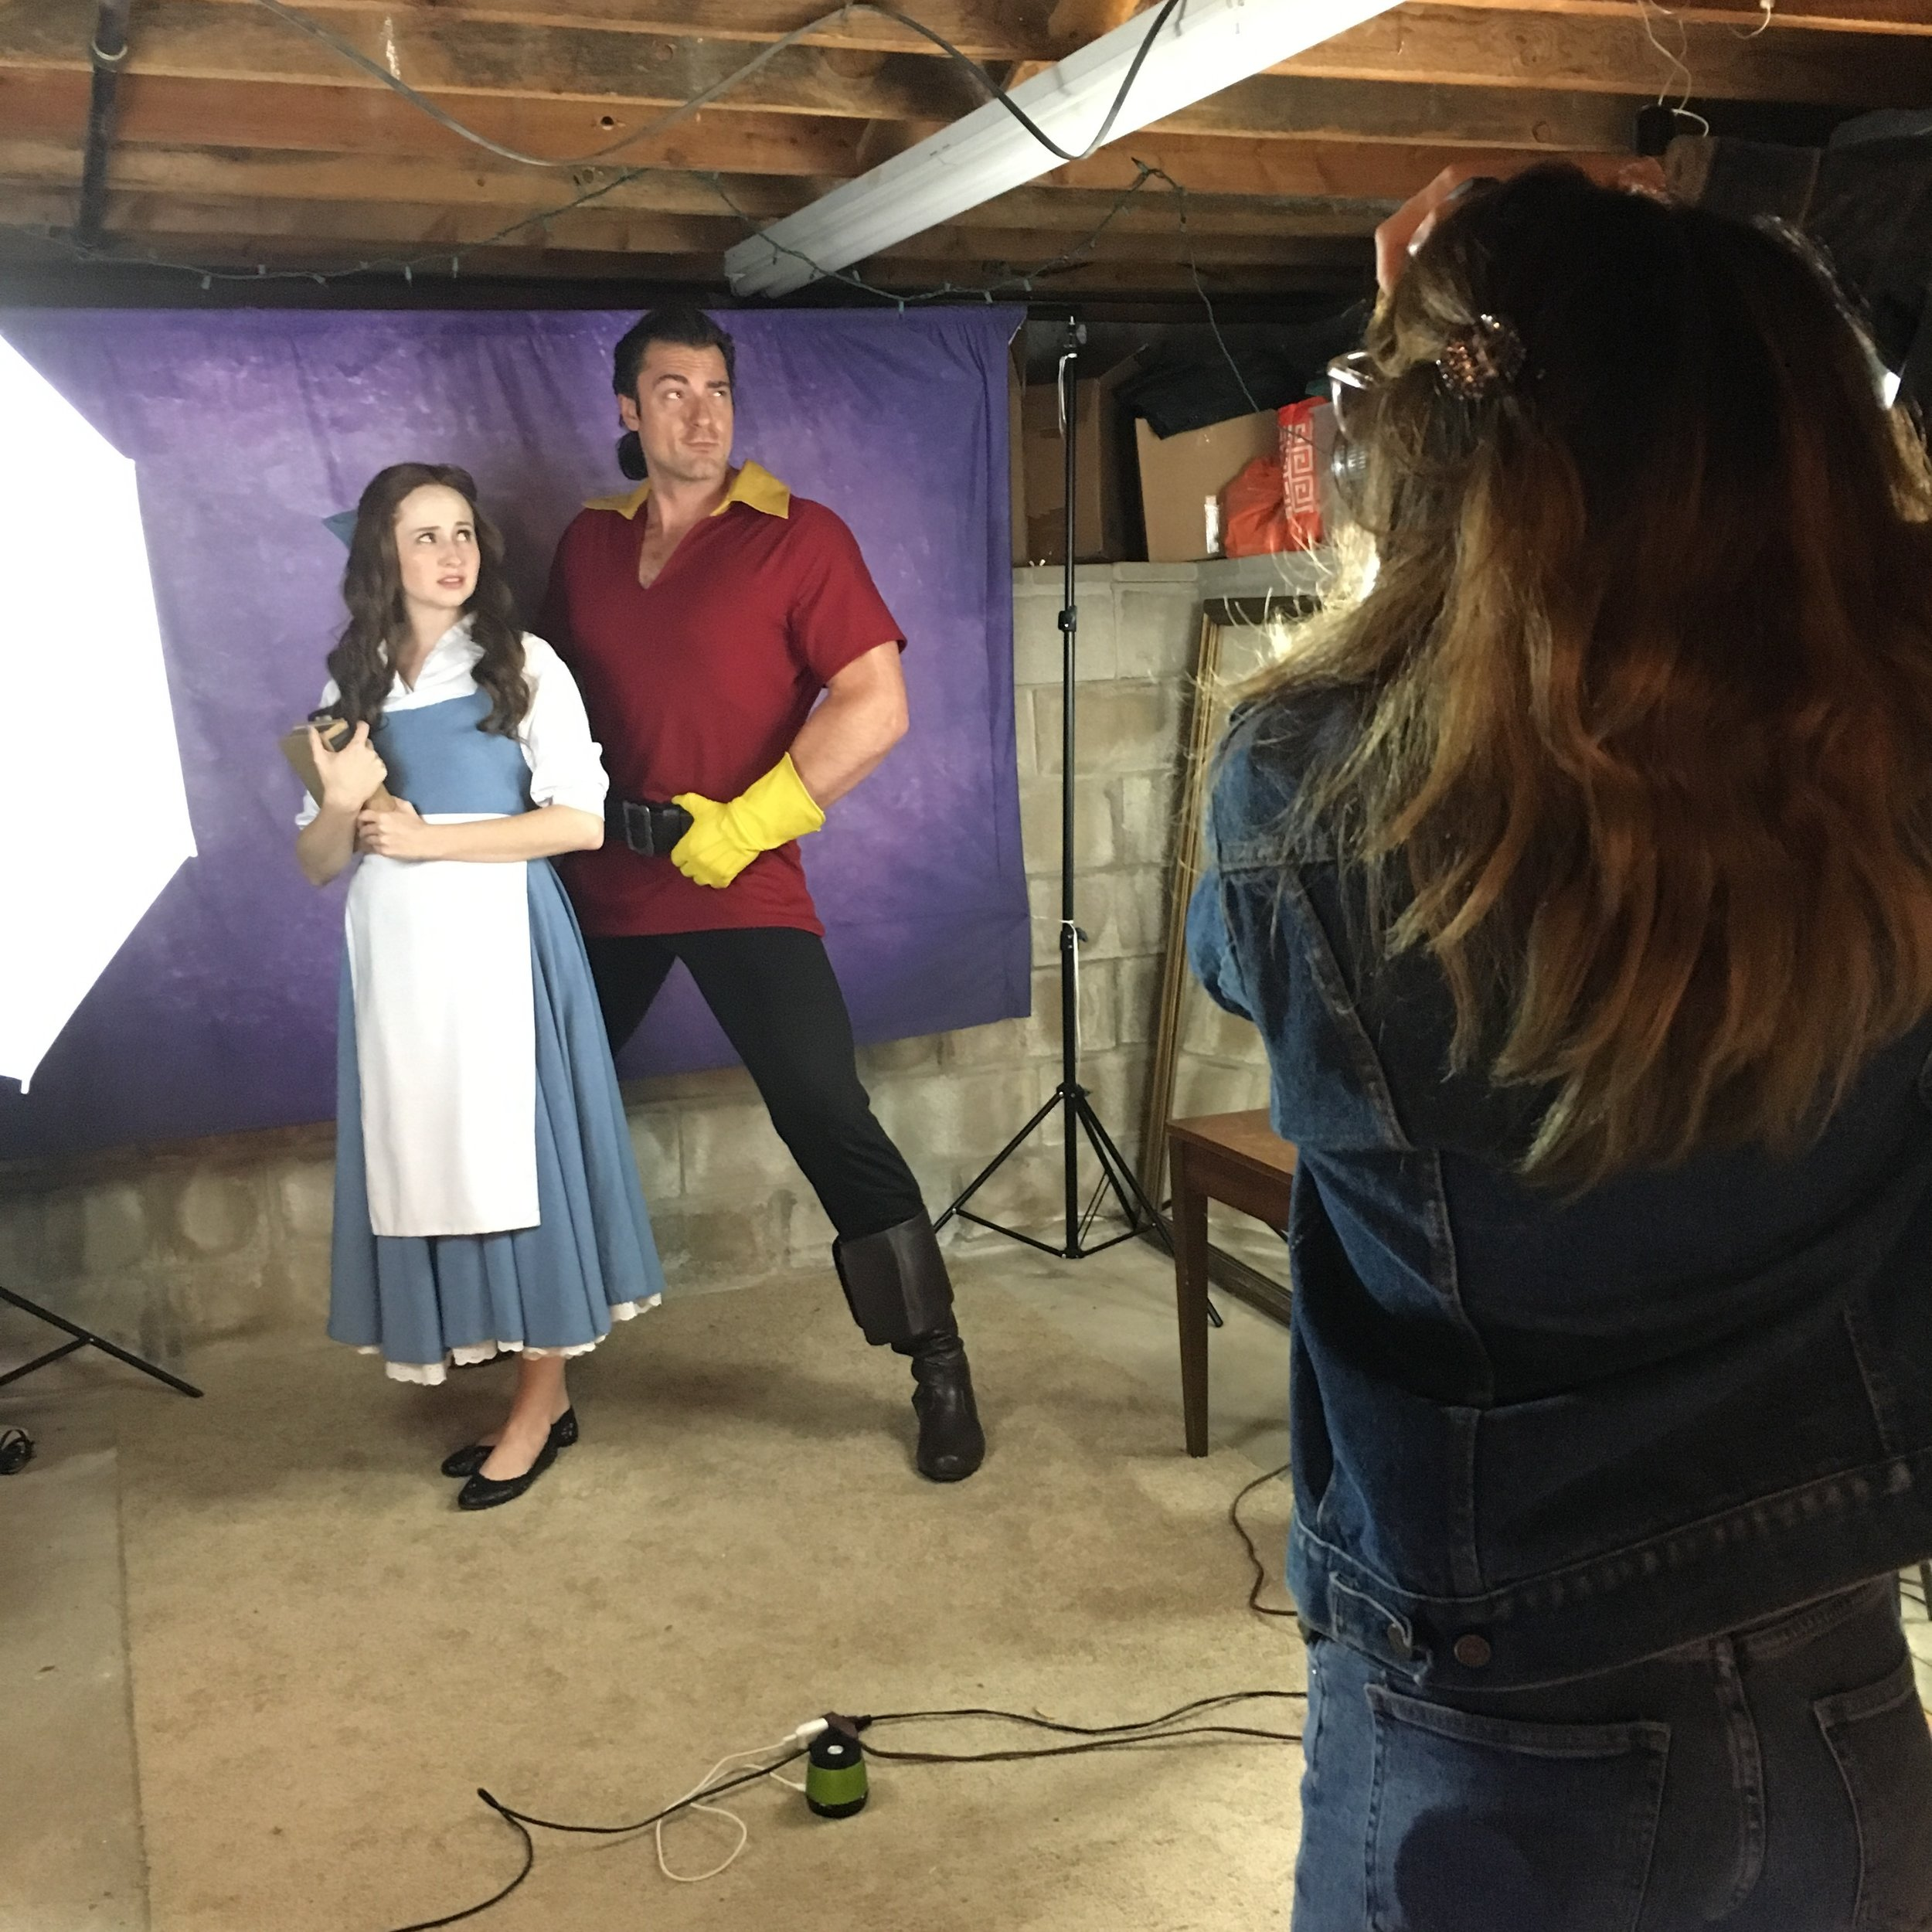 Mary Kate as Belle and Jesse as Gaston